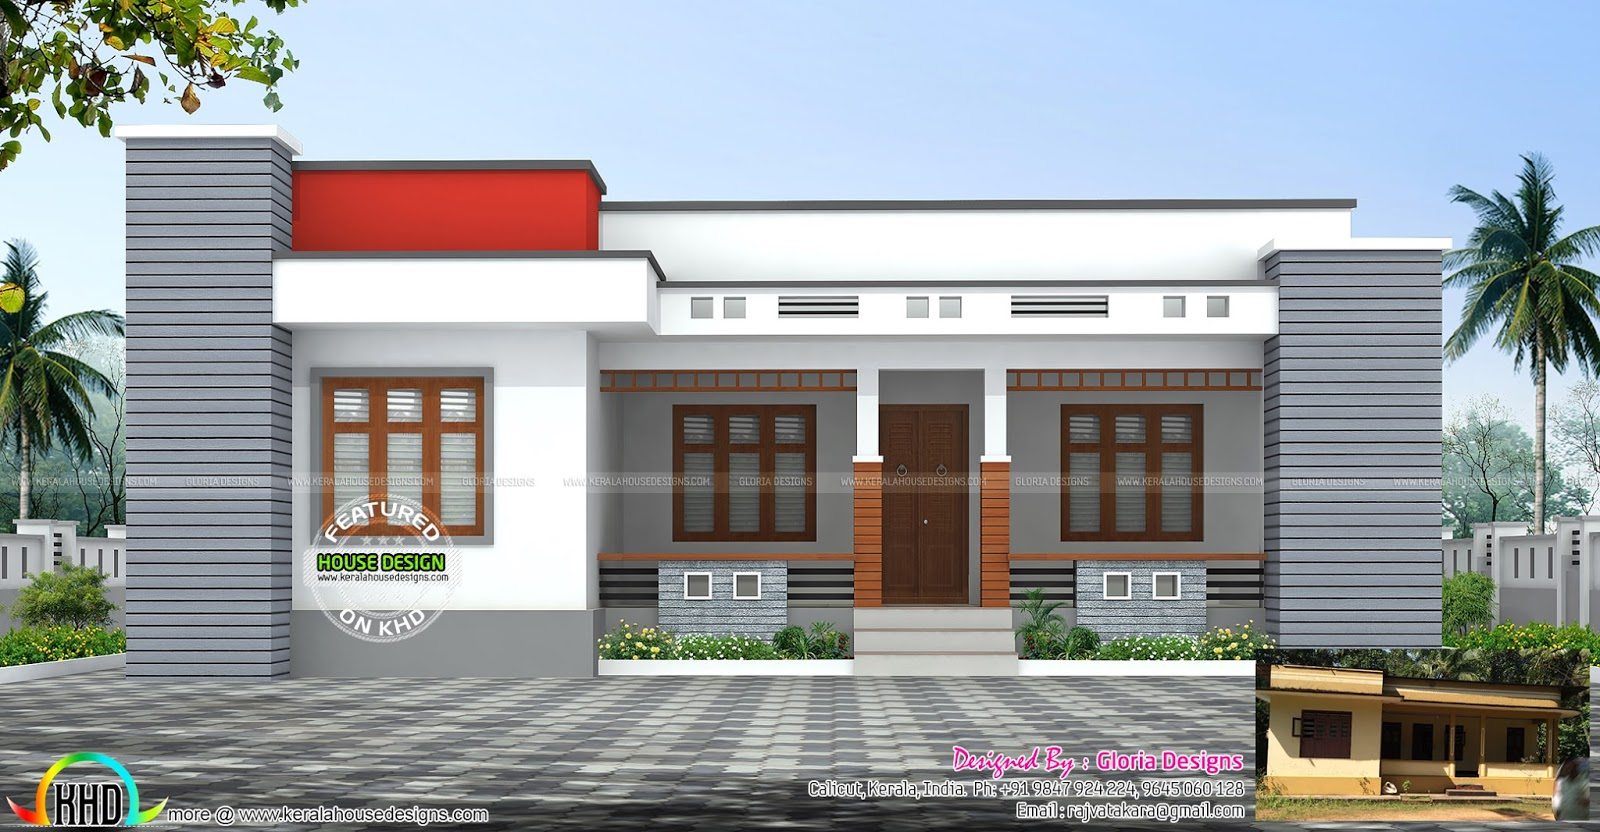 April 2016 kerala home design and floor plans for Single floor house designs tamilnadu